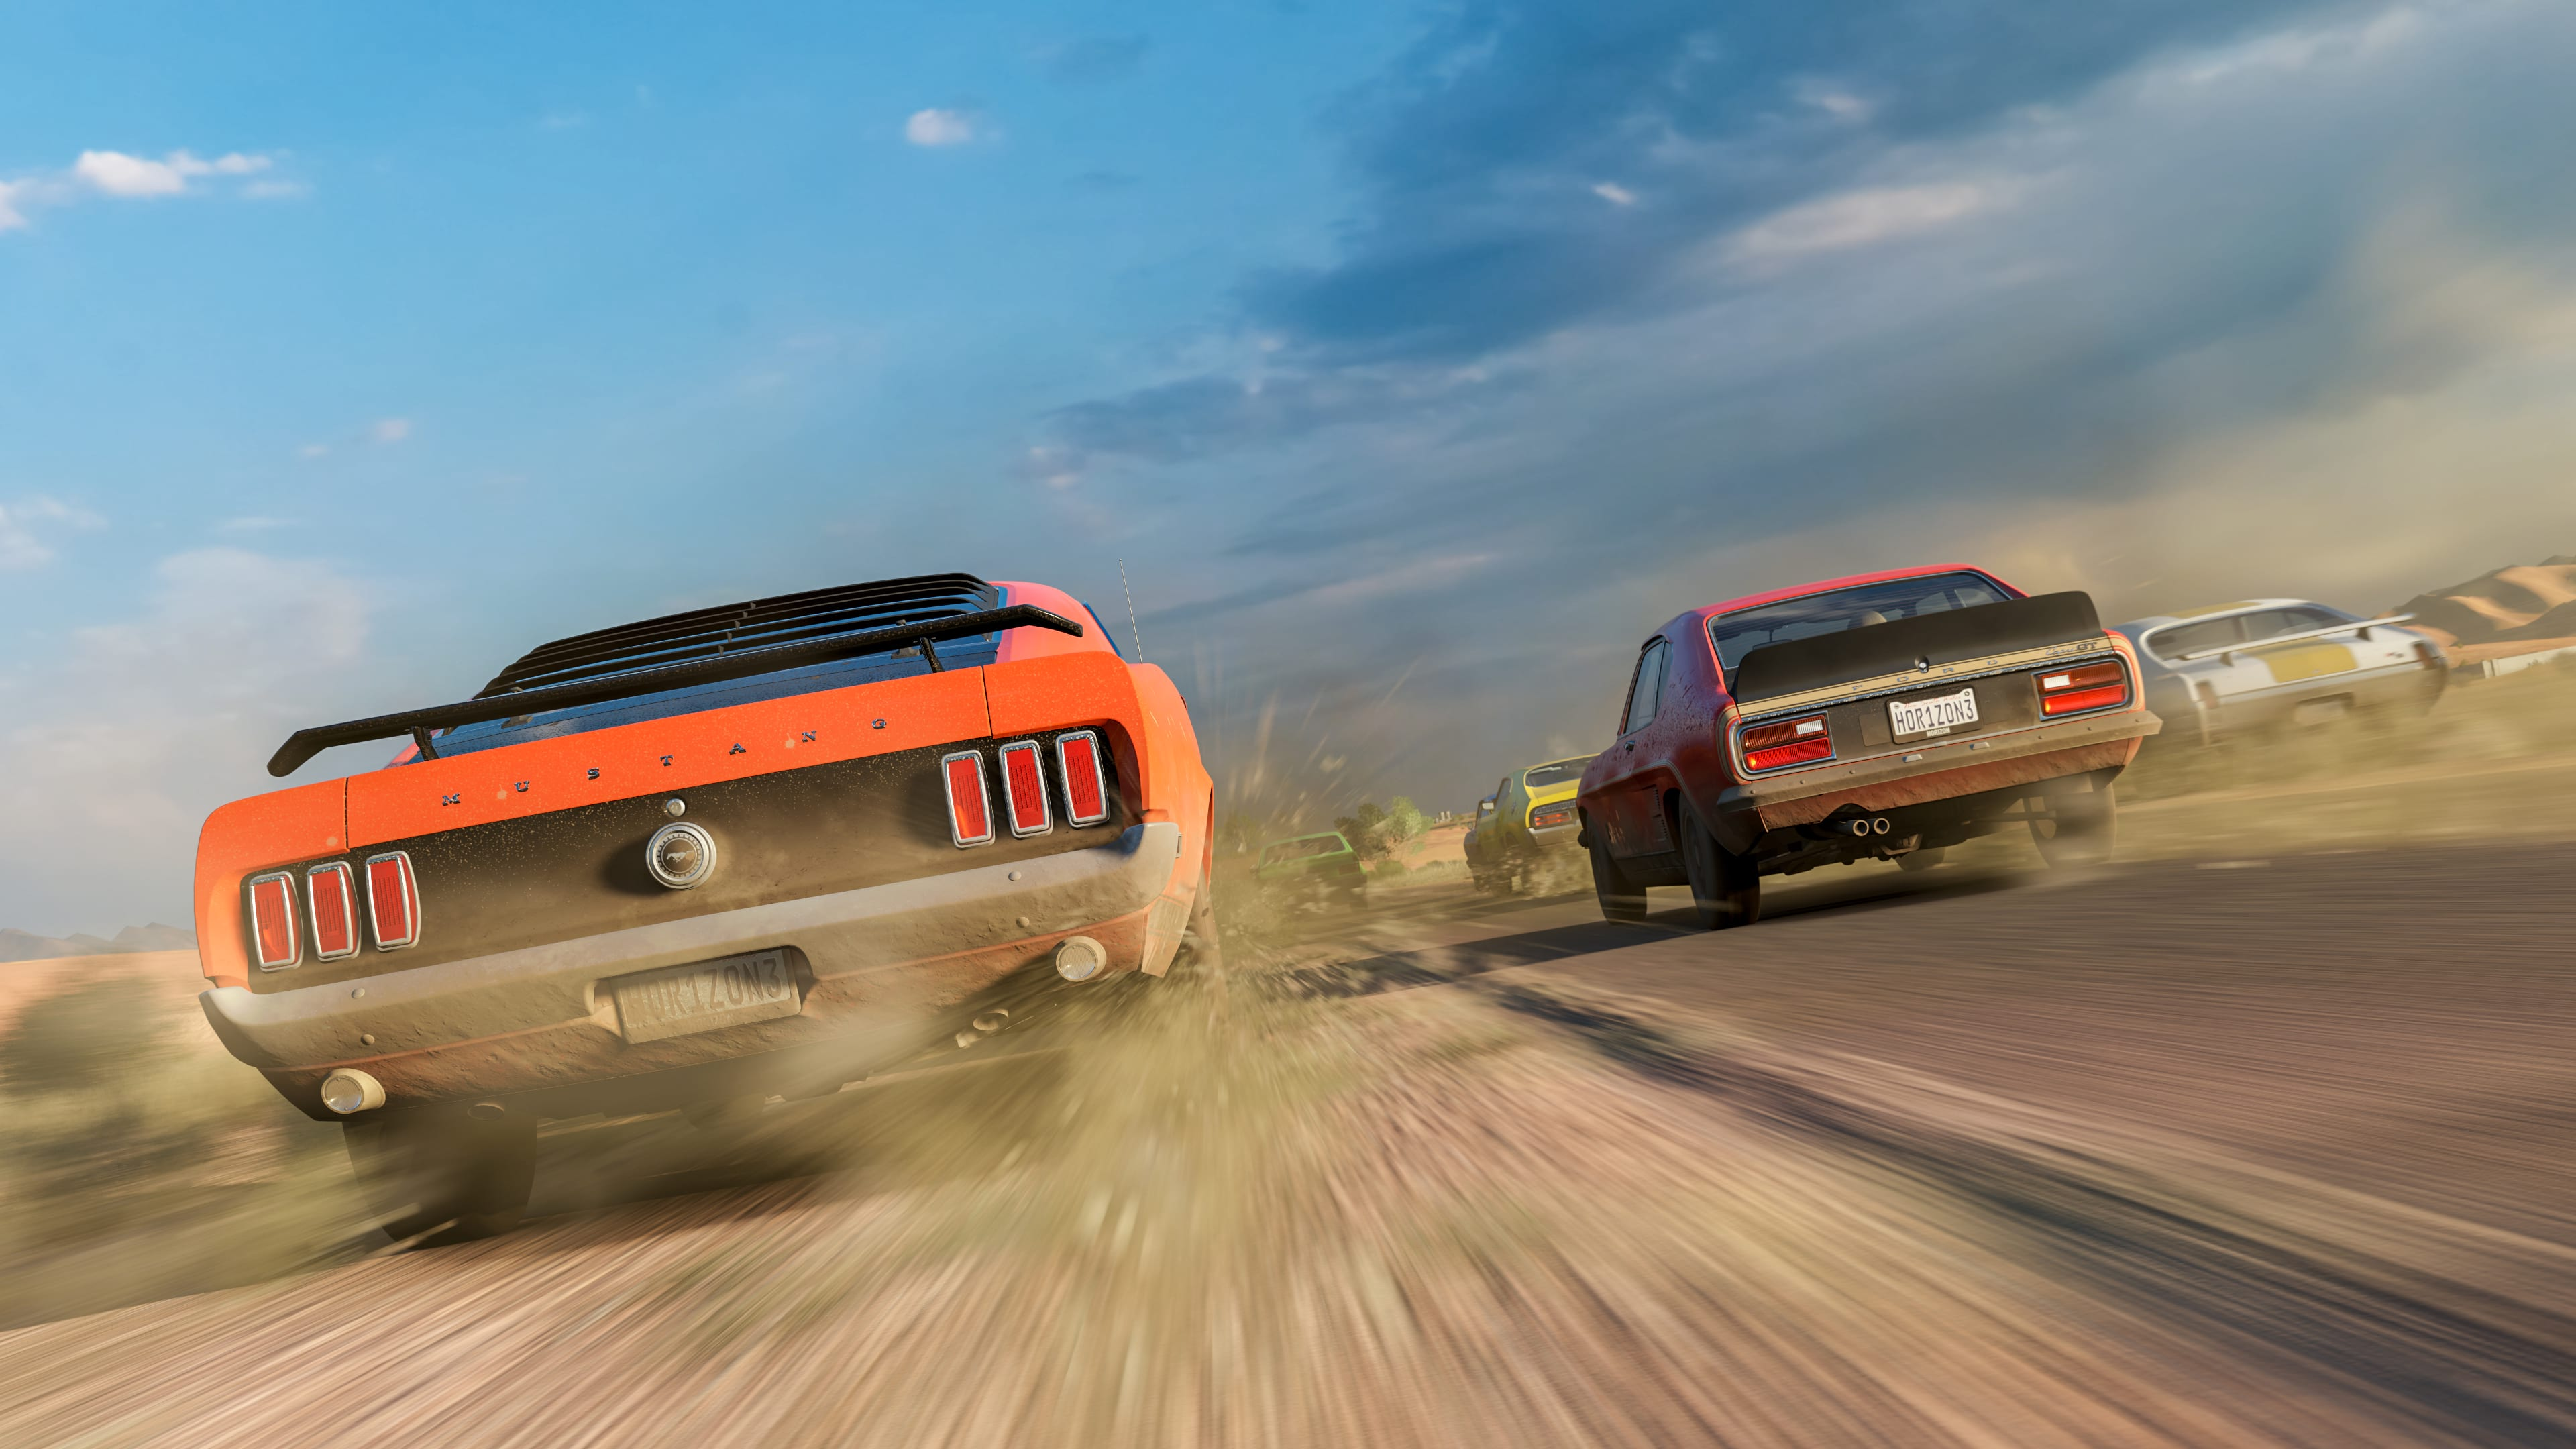 Gamer Has One Last Race With Dead Friend In Forza Horizon 3 wsi imageoptim 2372ed02 65a4 412d 890d 51ad50335841